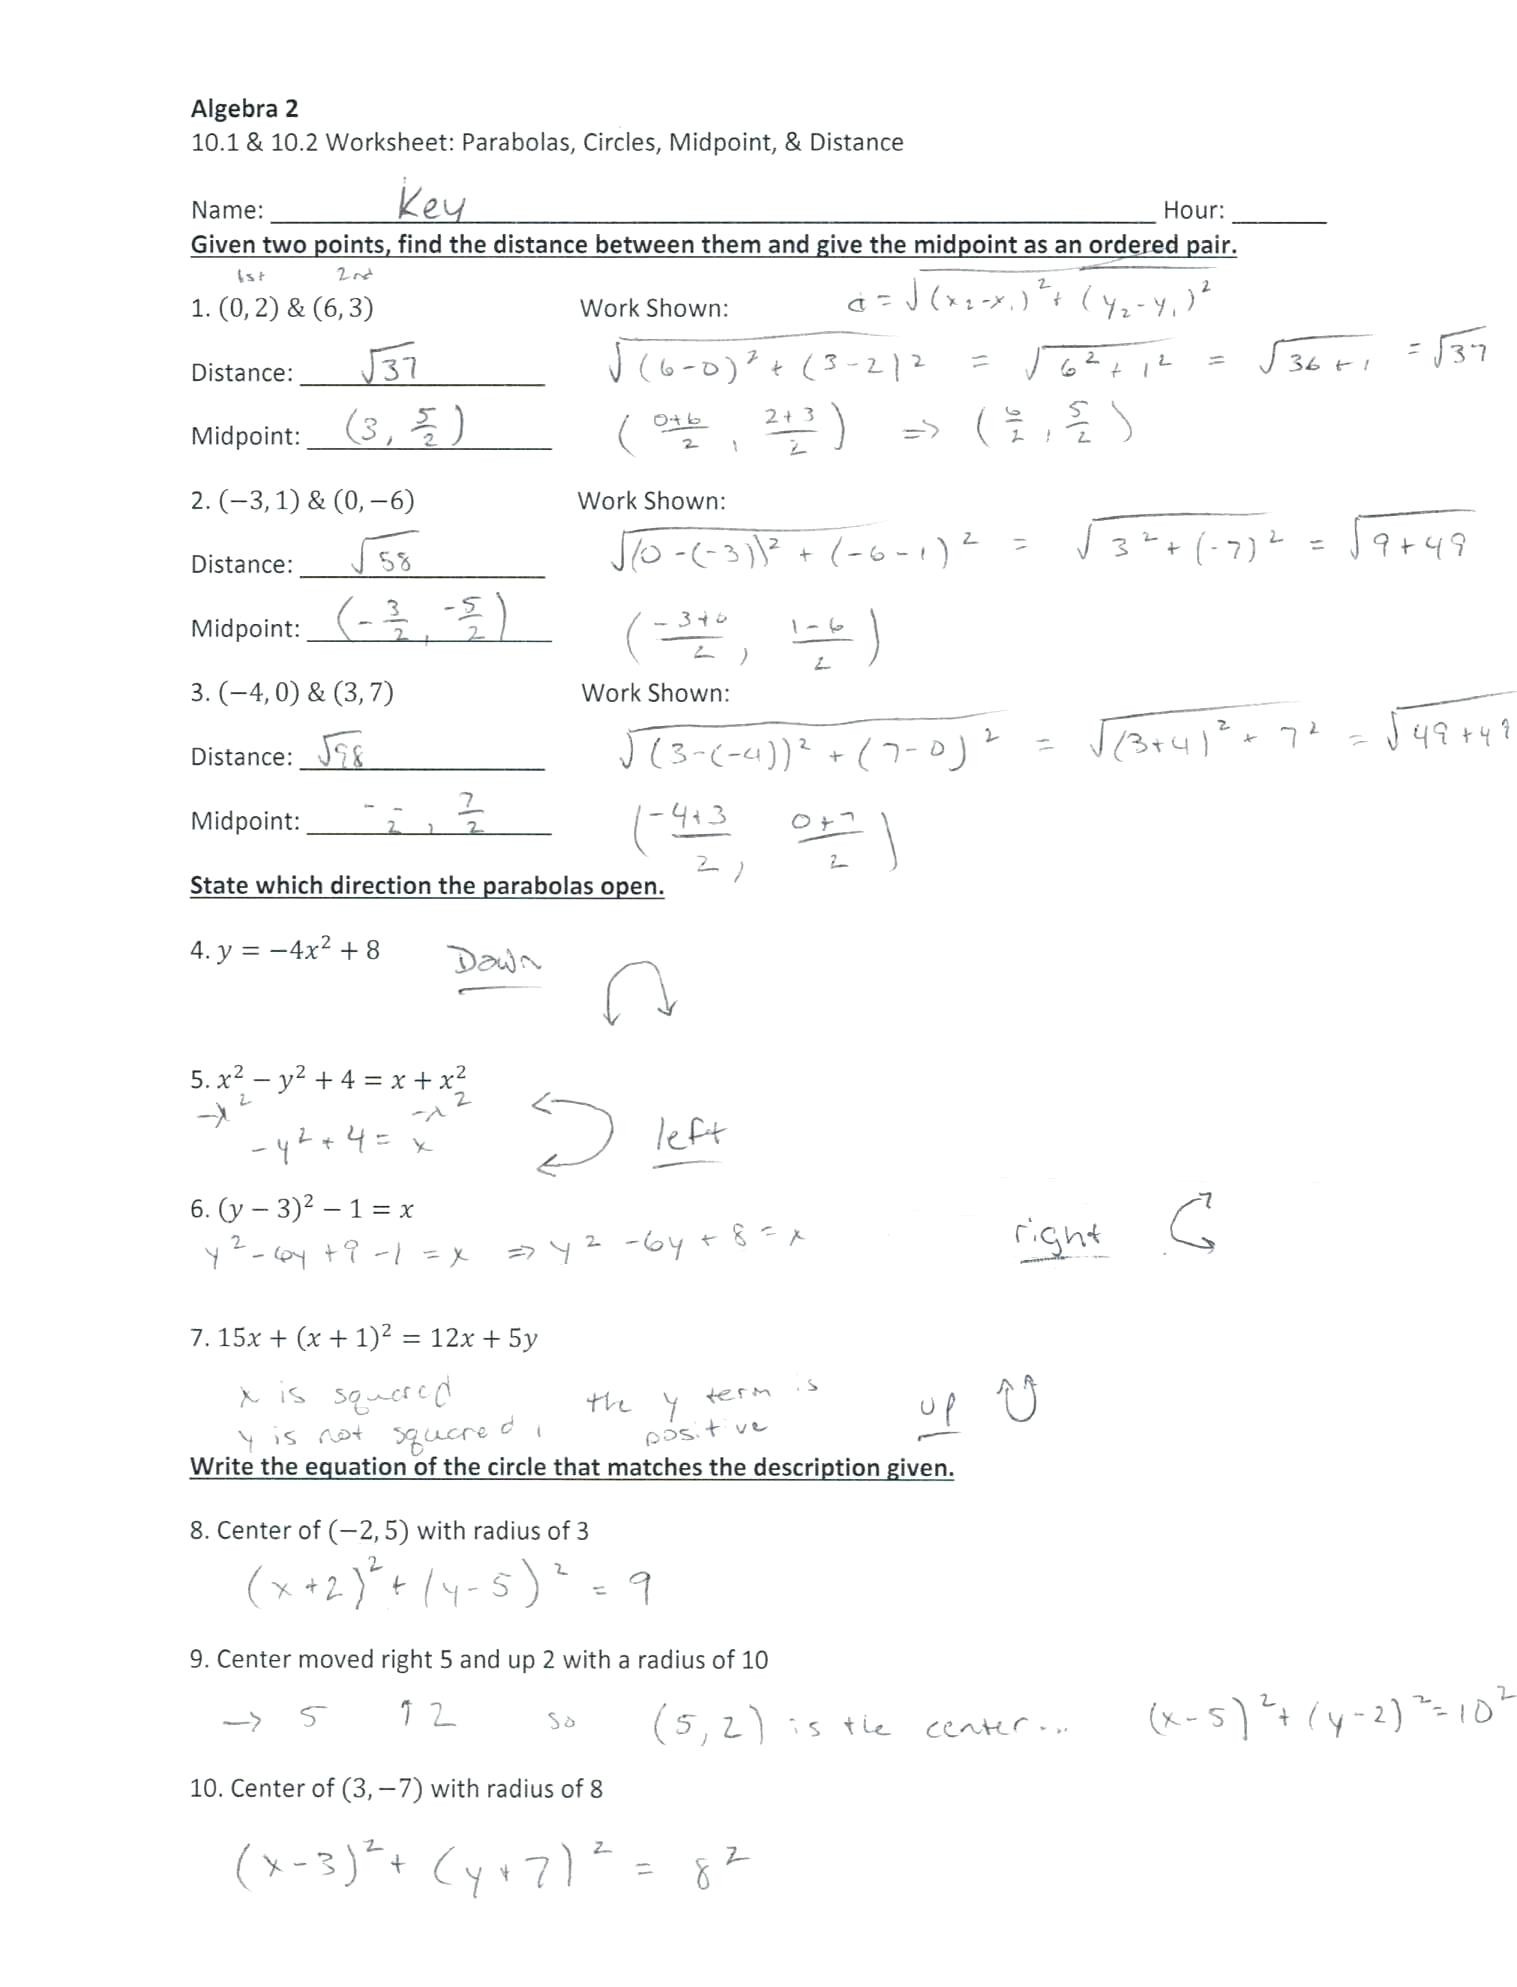 Distance and Midpoint Worksheet Answers Midpoint and Distance Worksheet Answer Key Nidecmege